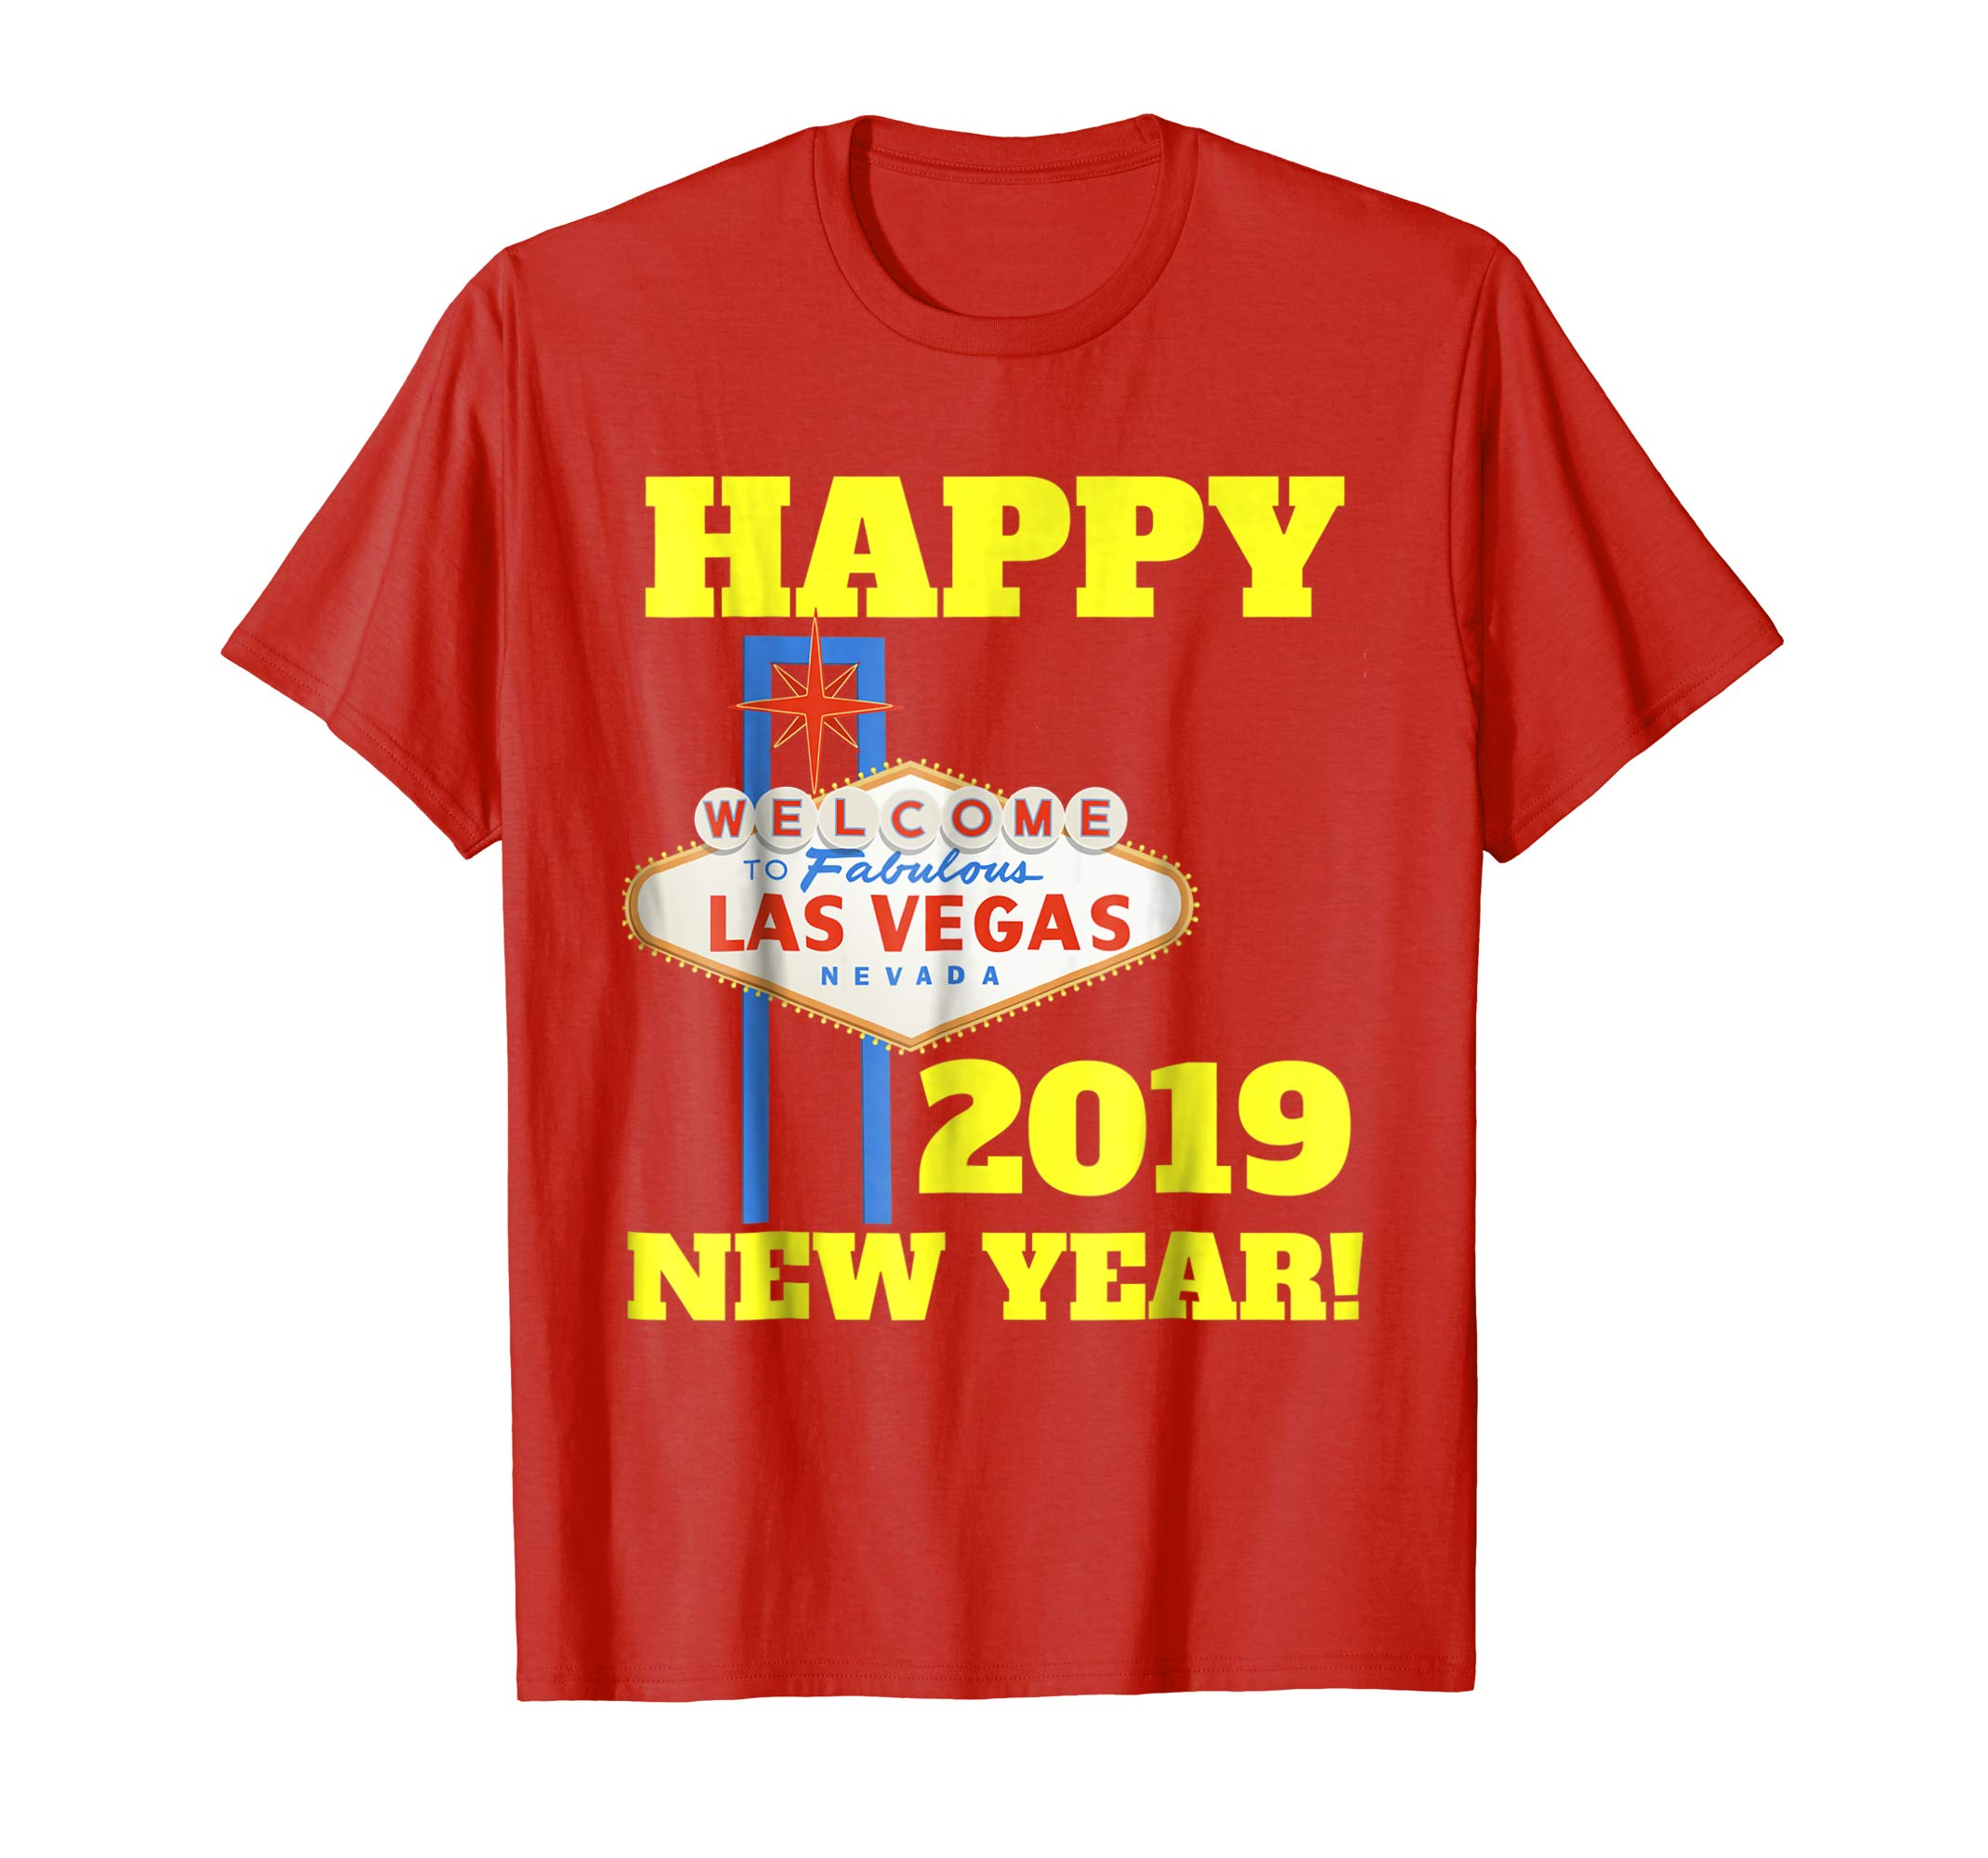 Las Vegas New Years 2019 Shirt, Happy New Year Vegas 2019-azvn